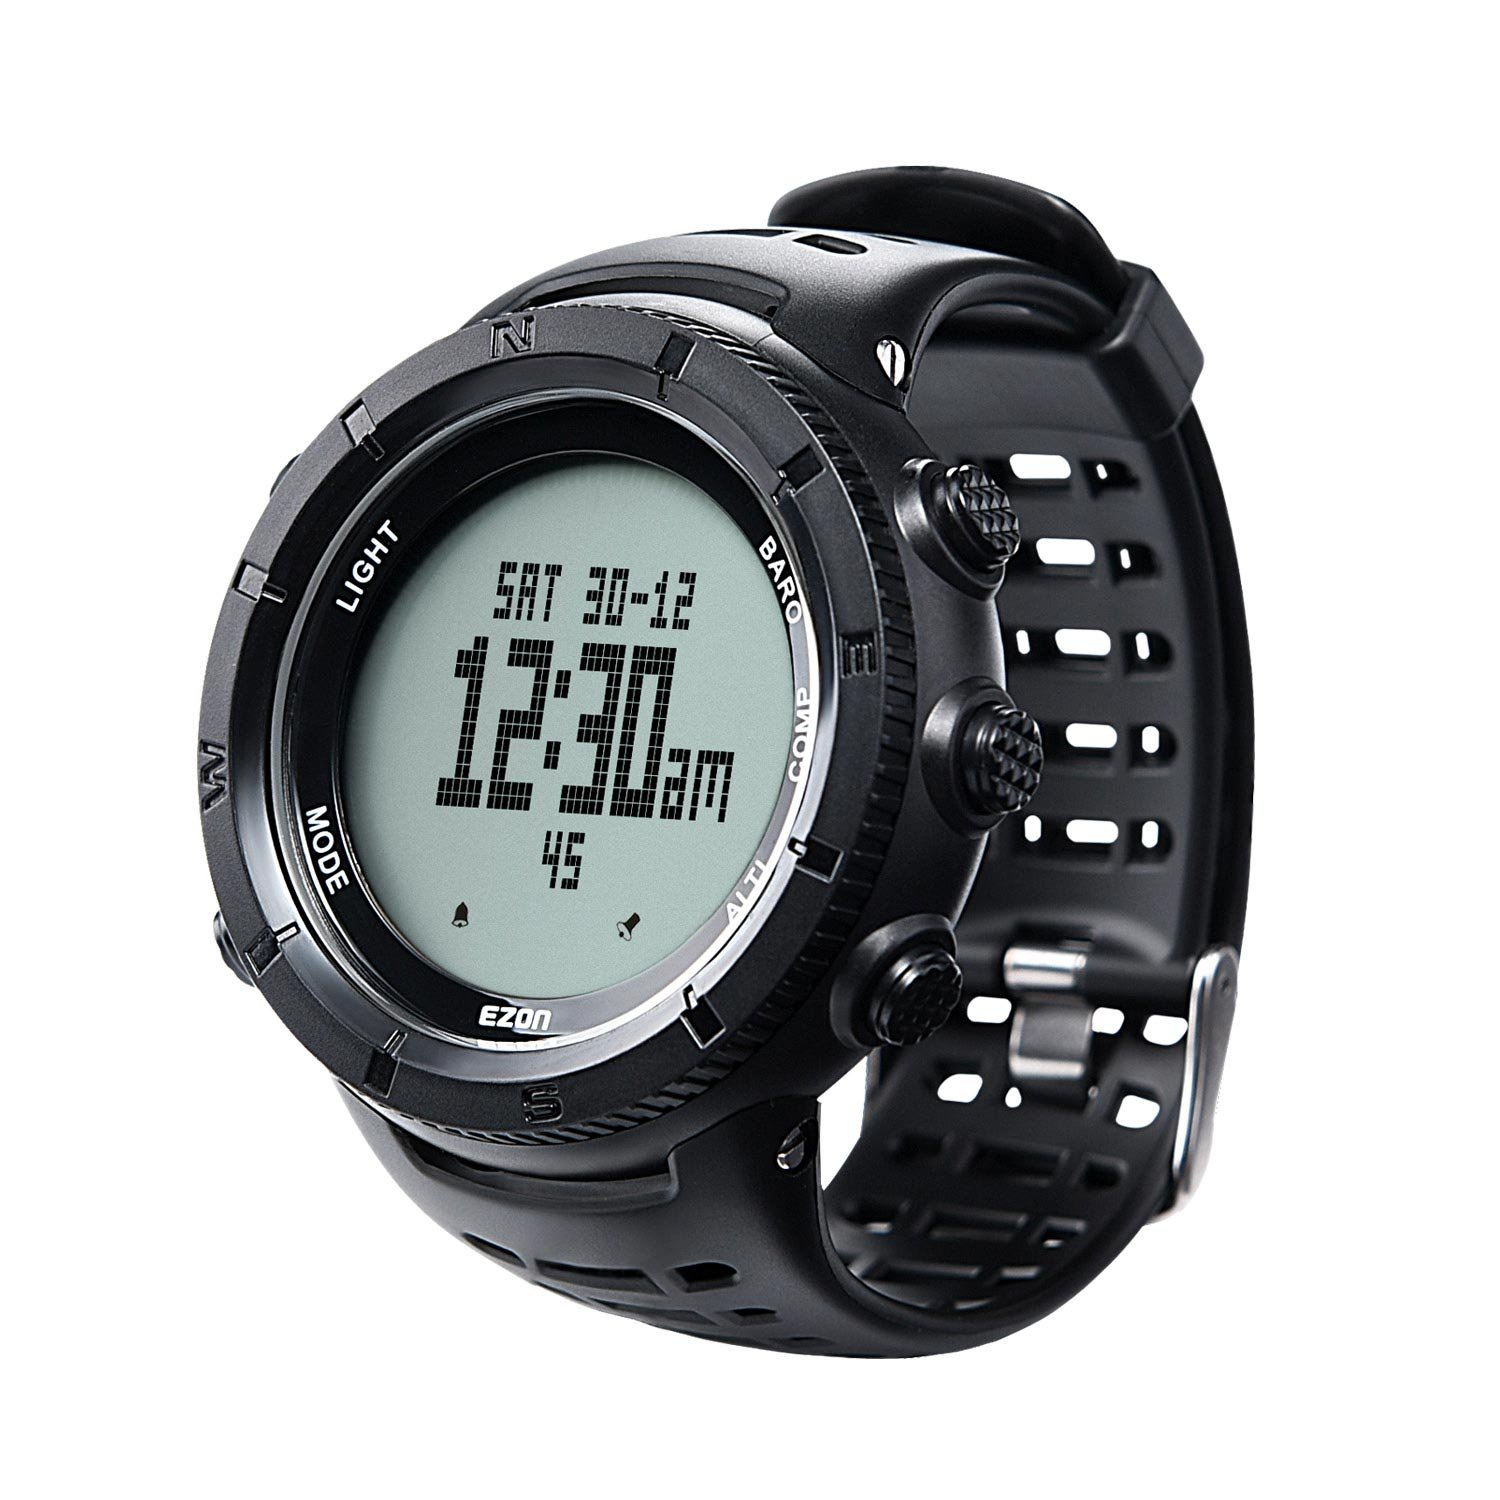 EZON Climbing Hiking Outdoor Sports Watch